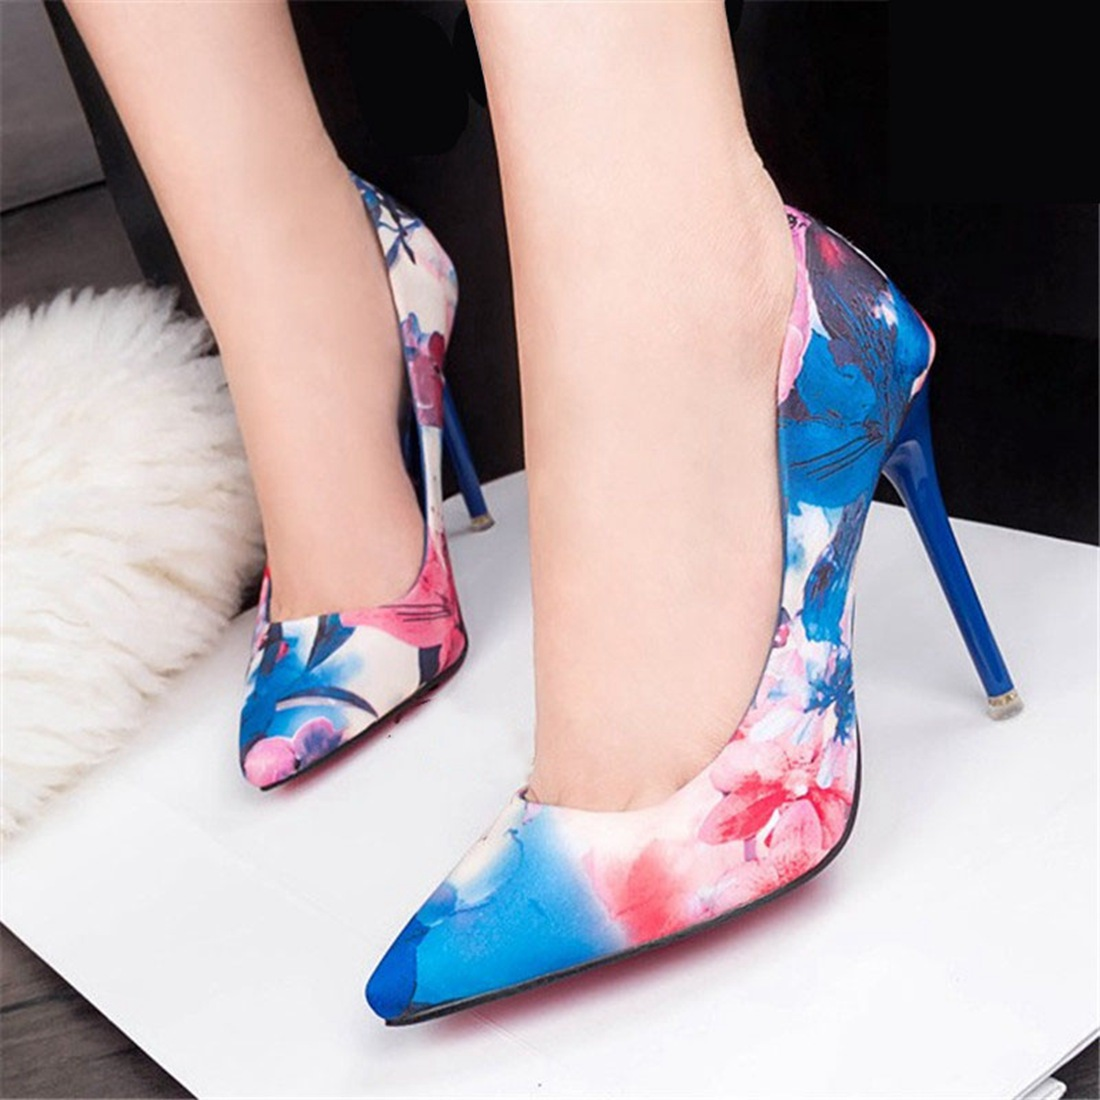 Flower Flora Pointed Toe Suede High Heels Fashion Sexy High Heel Shoes Women Pumps wedding shoes Pumps Nightclub Party Stiletto women pumps sexy office lady shoes extreme high heels stiletto suede shoes women heels fashion pointed toe pumps ladies shoes